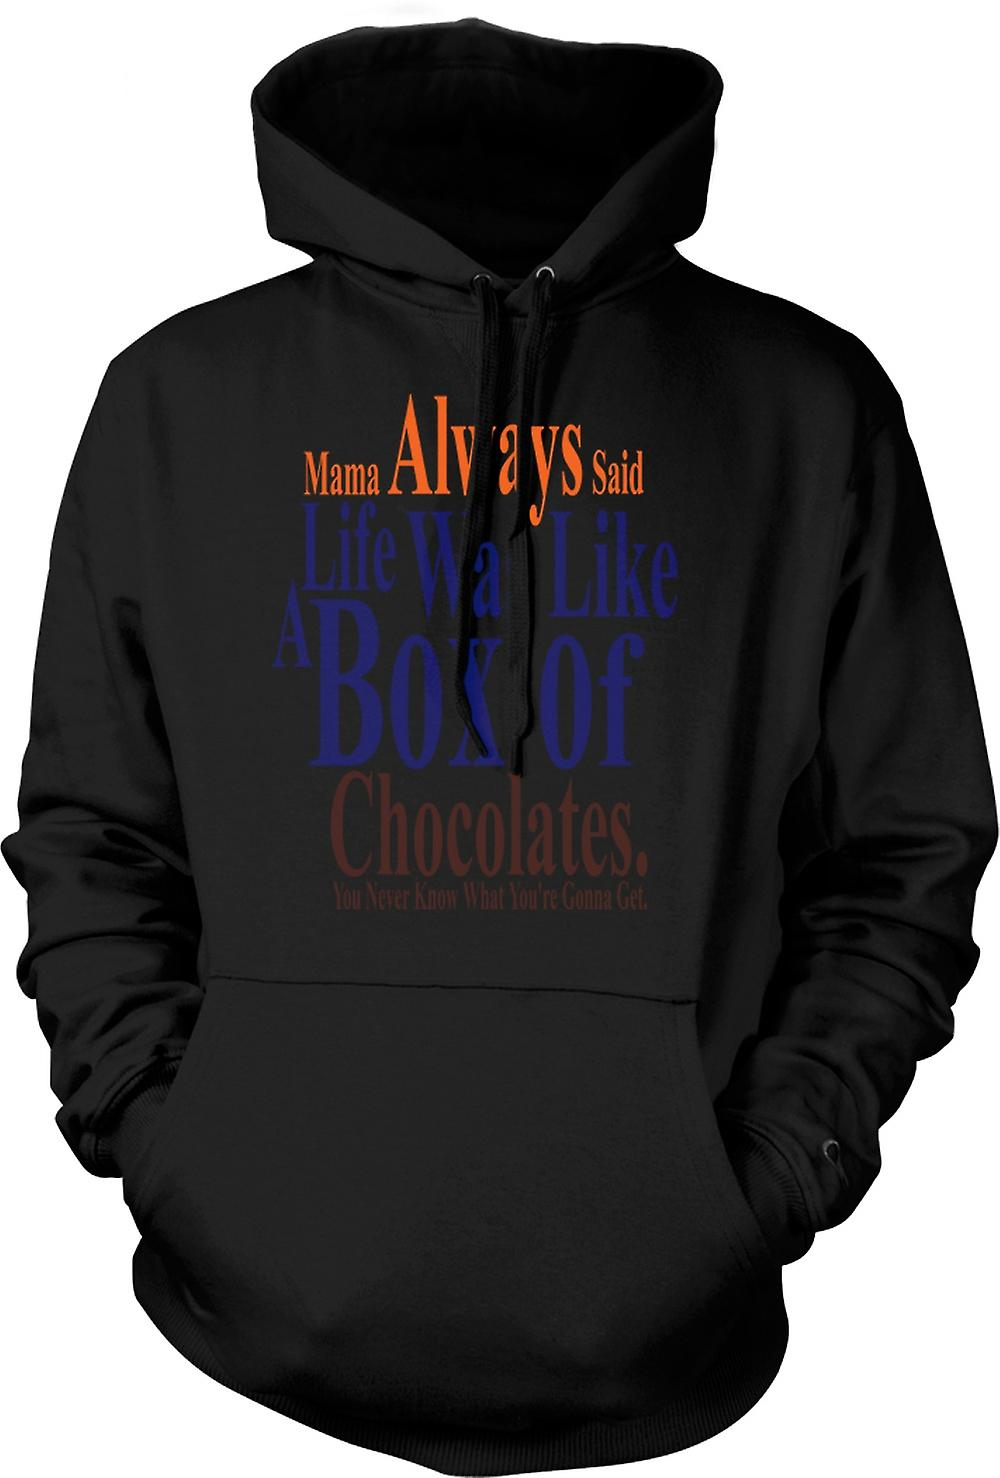 Mens Hoodie - Forrest Gump Box Chocolates - Funny